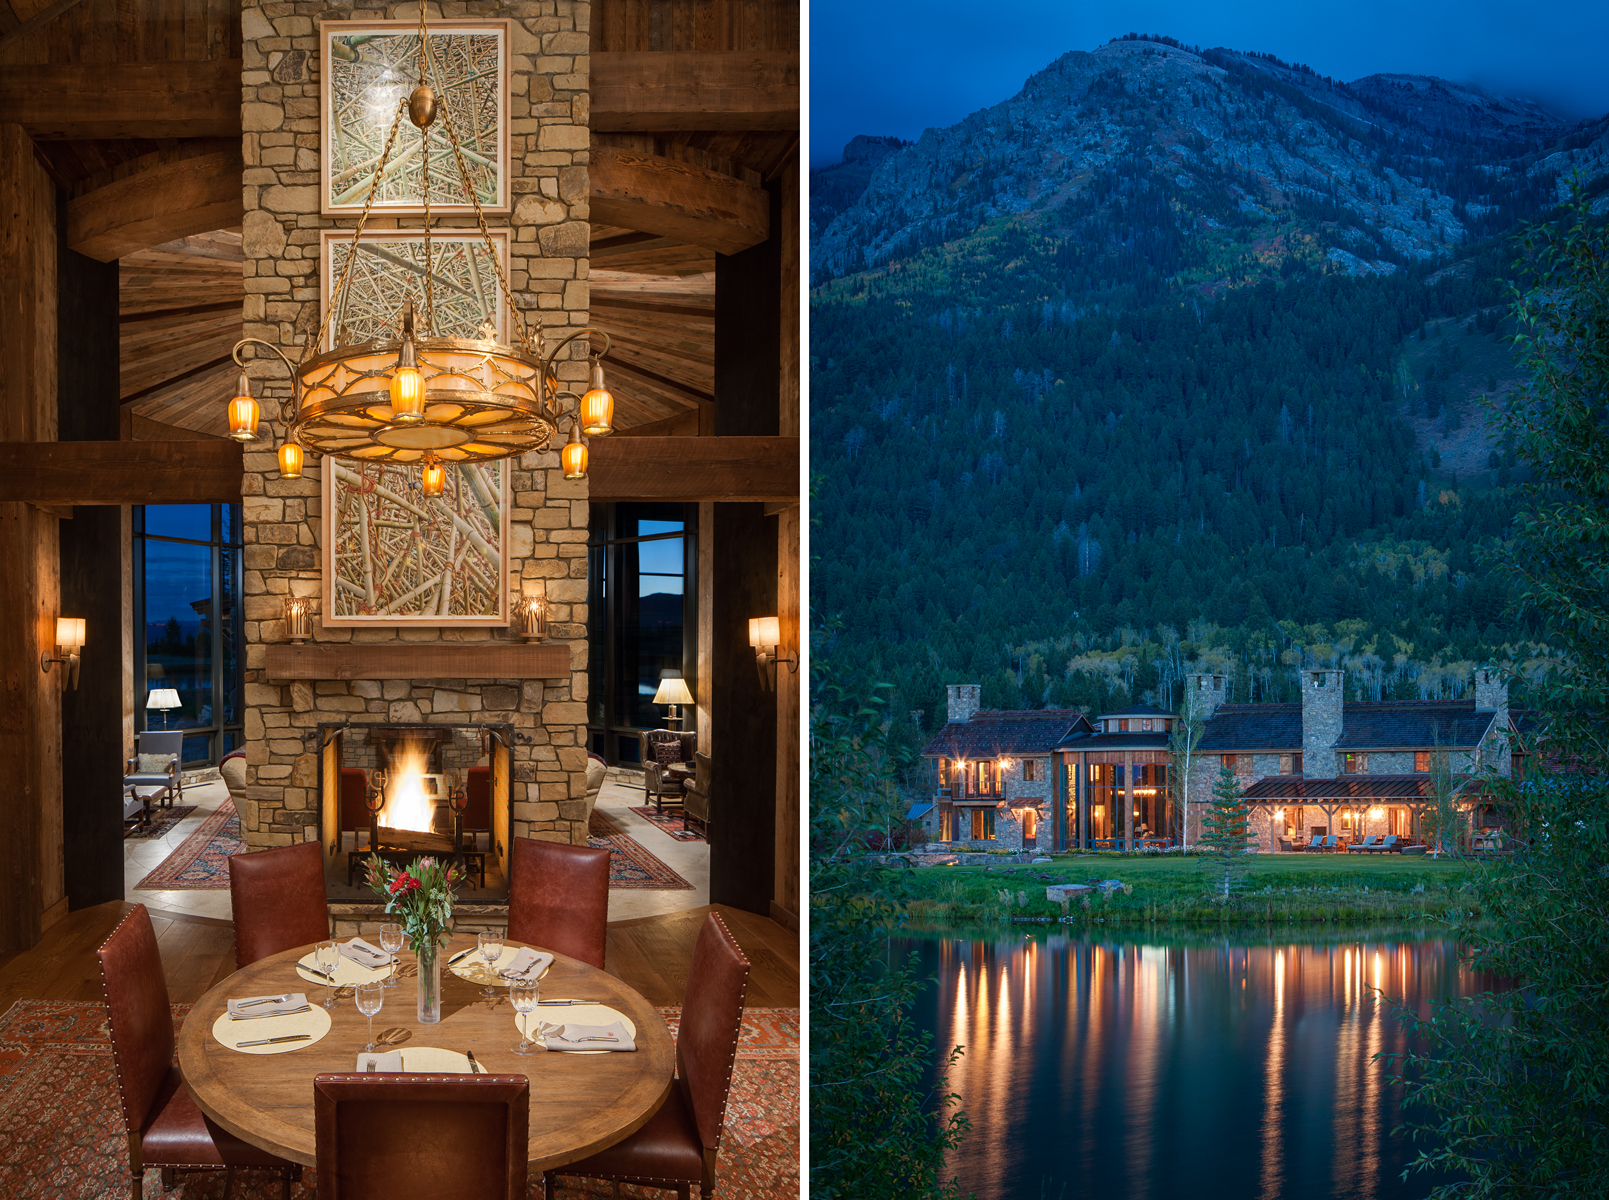 Two views of a  private residence in the Shoting Star Development in JAckson, Wyoming. One view is an interior showing the main dining room table at dusk with warm wood tones and a roaring fire in the fire place and the other is an exterior of the home at dawn taken from across the lake with reflections on the water.Architectural Photography by: Paul Richer / RICHER IMAGES